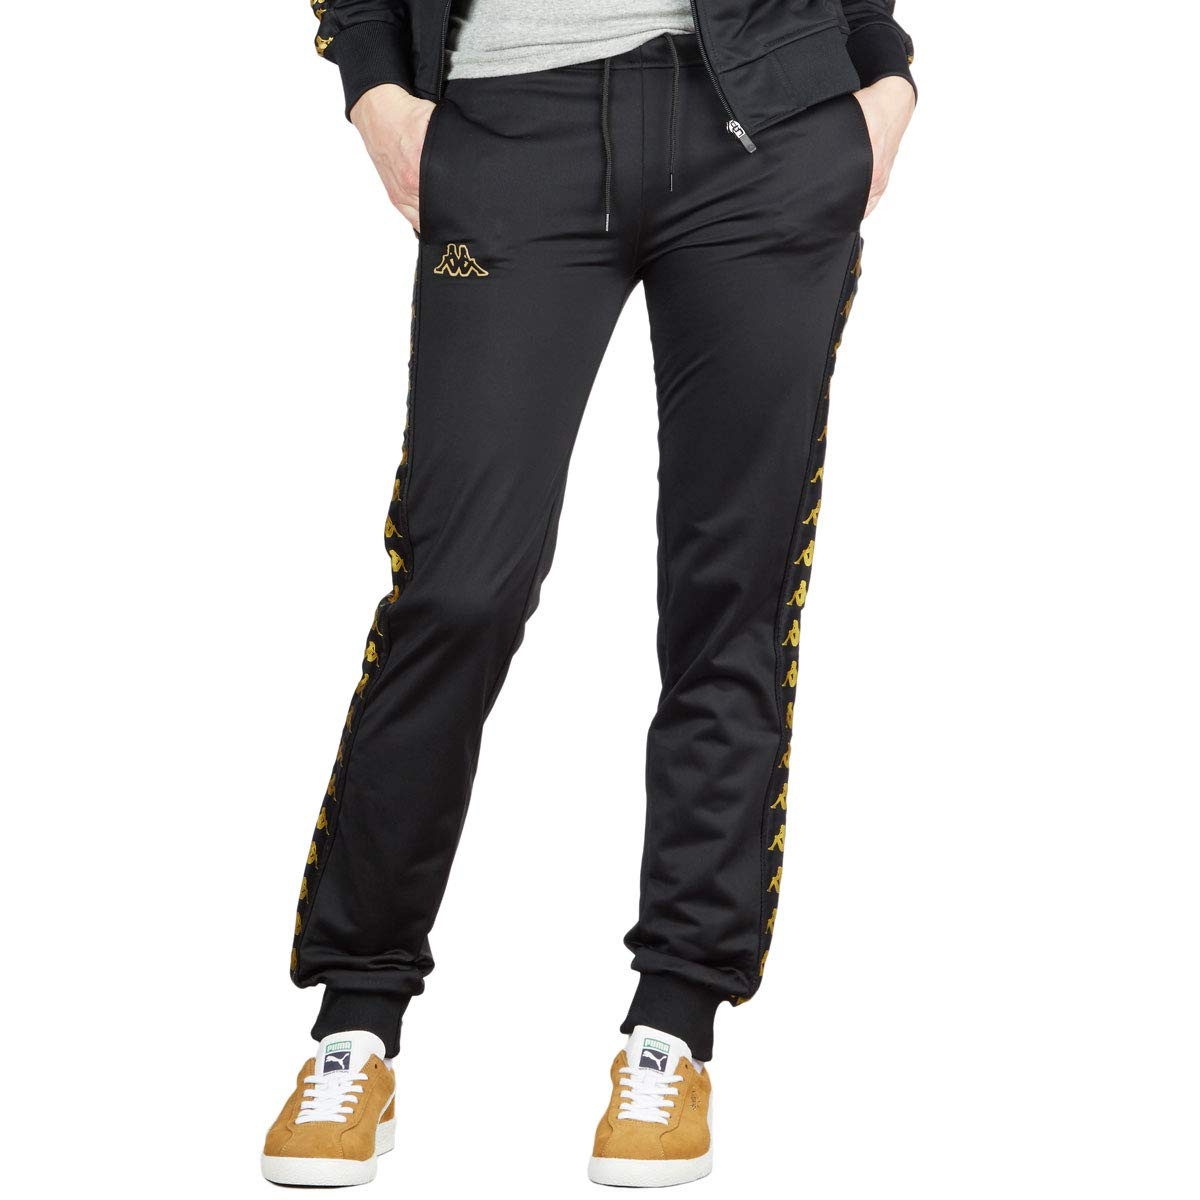 96eb0df940 Kappa Womens 222 Banda Wrastoria Slim Pants - Black/Gold Yellow at ...